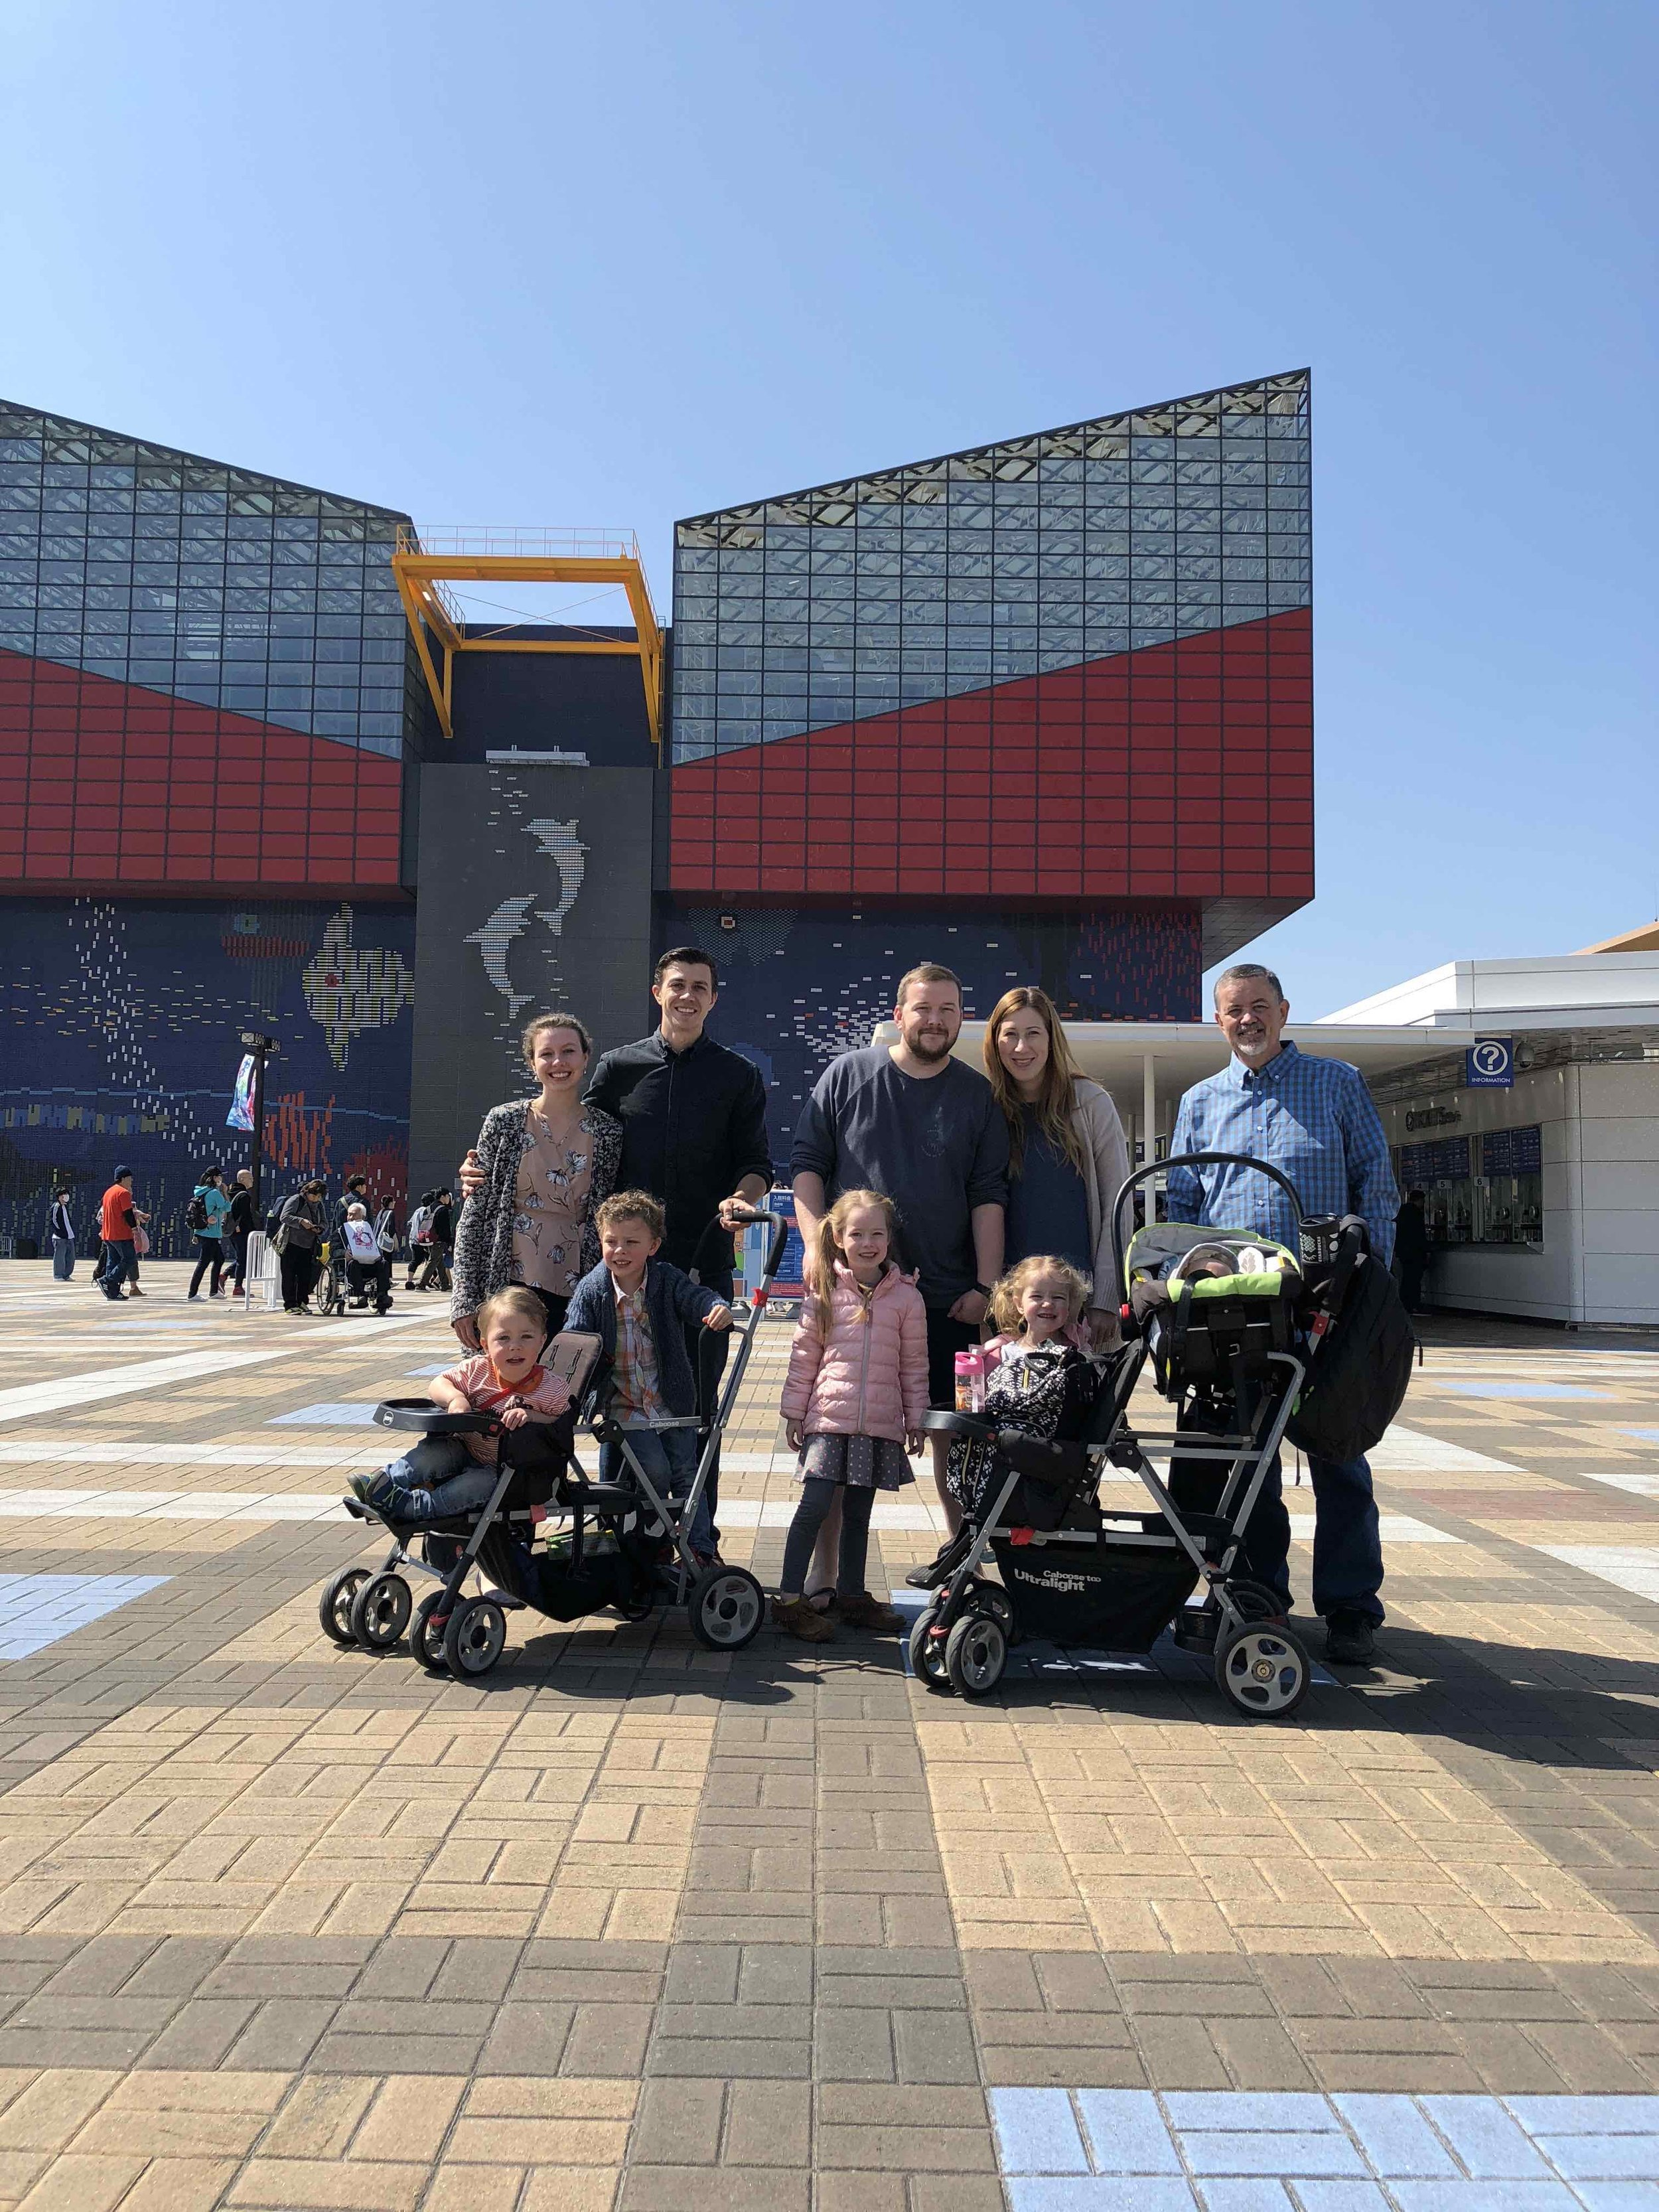 Here we are with the Cathcart family at the Osaka Aquarium, getting familiar with the metropolis of over 19 million that we'll be working in. The Cathcarts have been instrumental in helping us get settled in Japan.